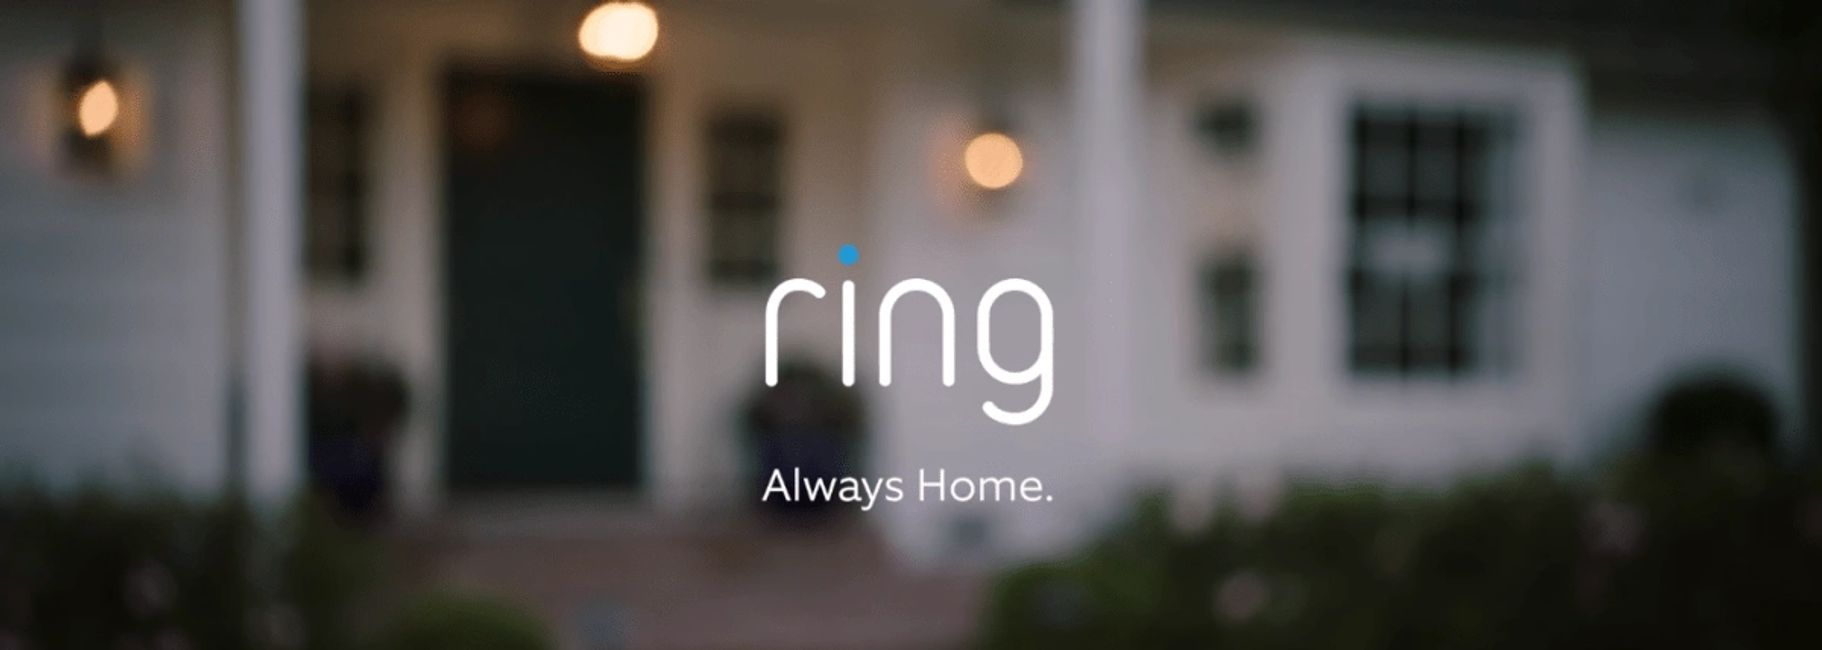 Ring Video Doorbell, Ring Floodlight Cam, Ring Stickup Cam, Ring Spotlight Cam